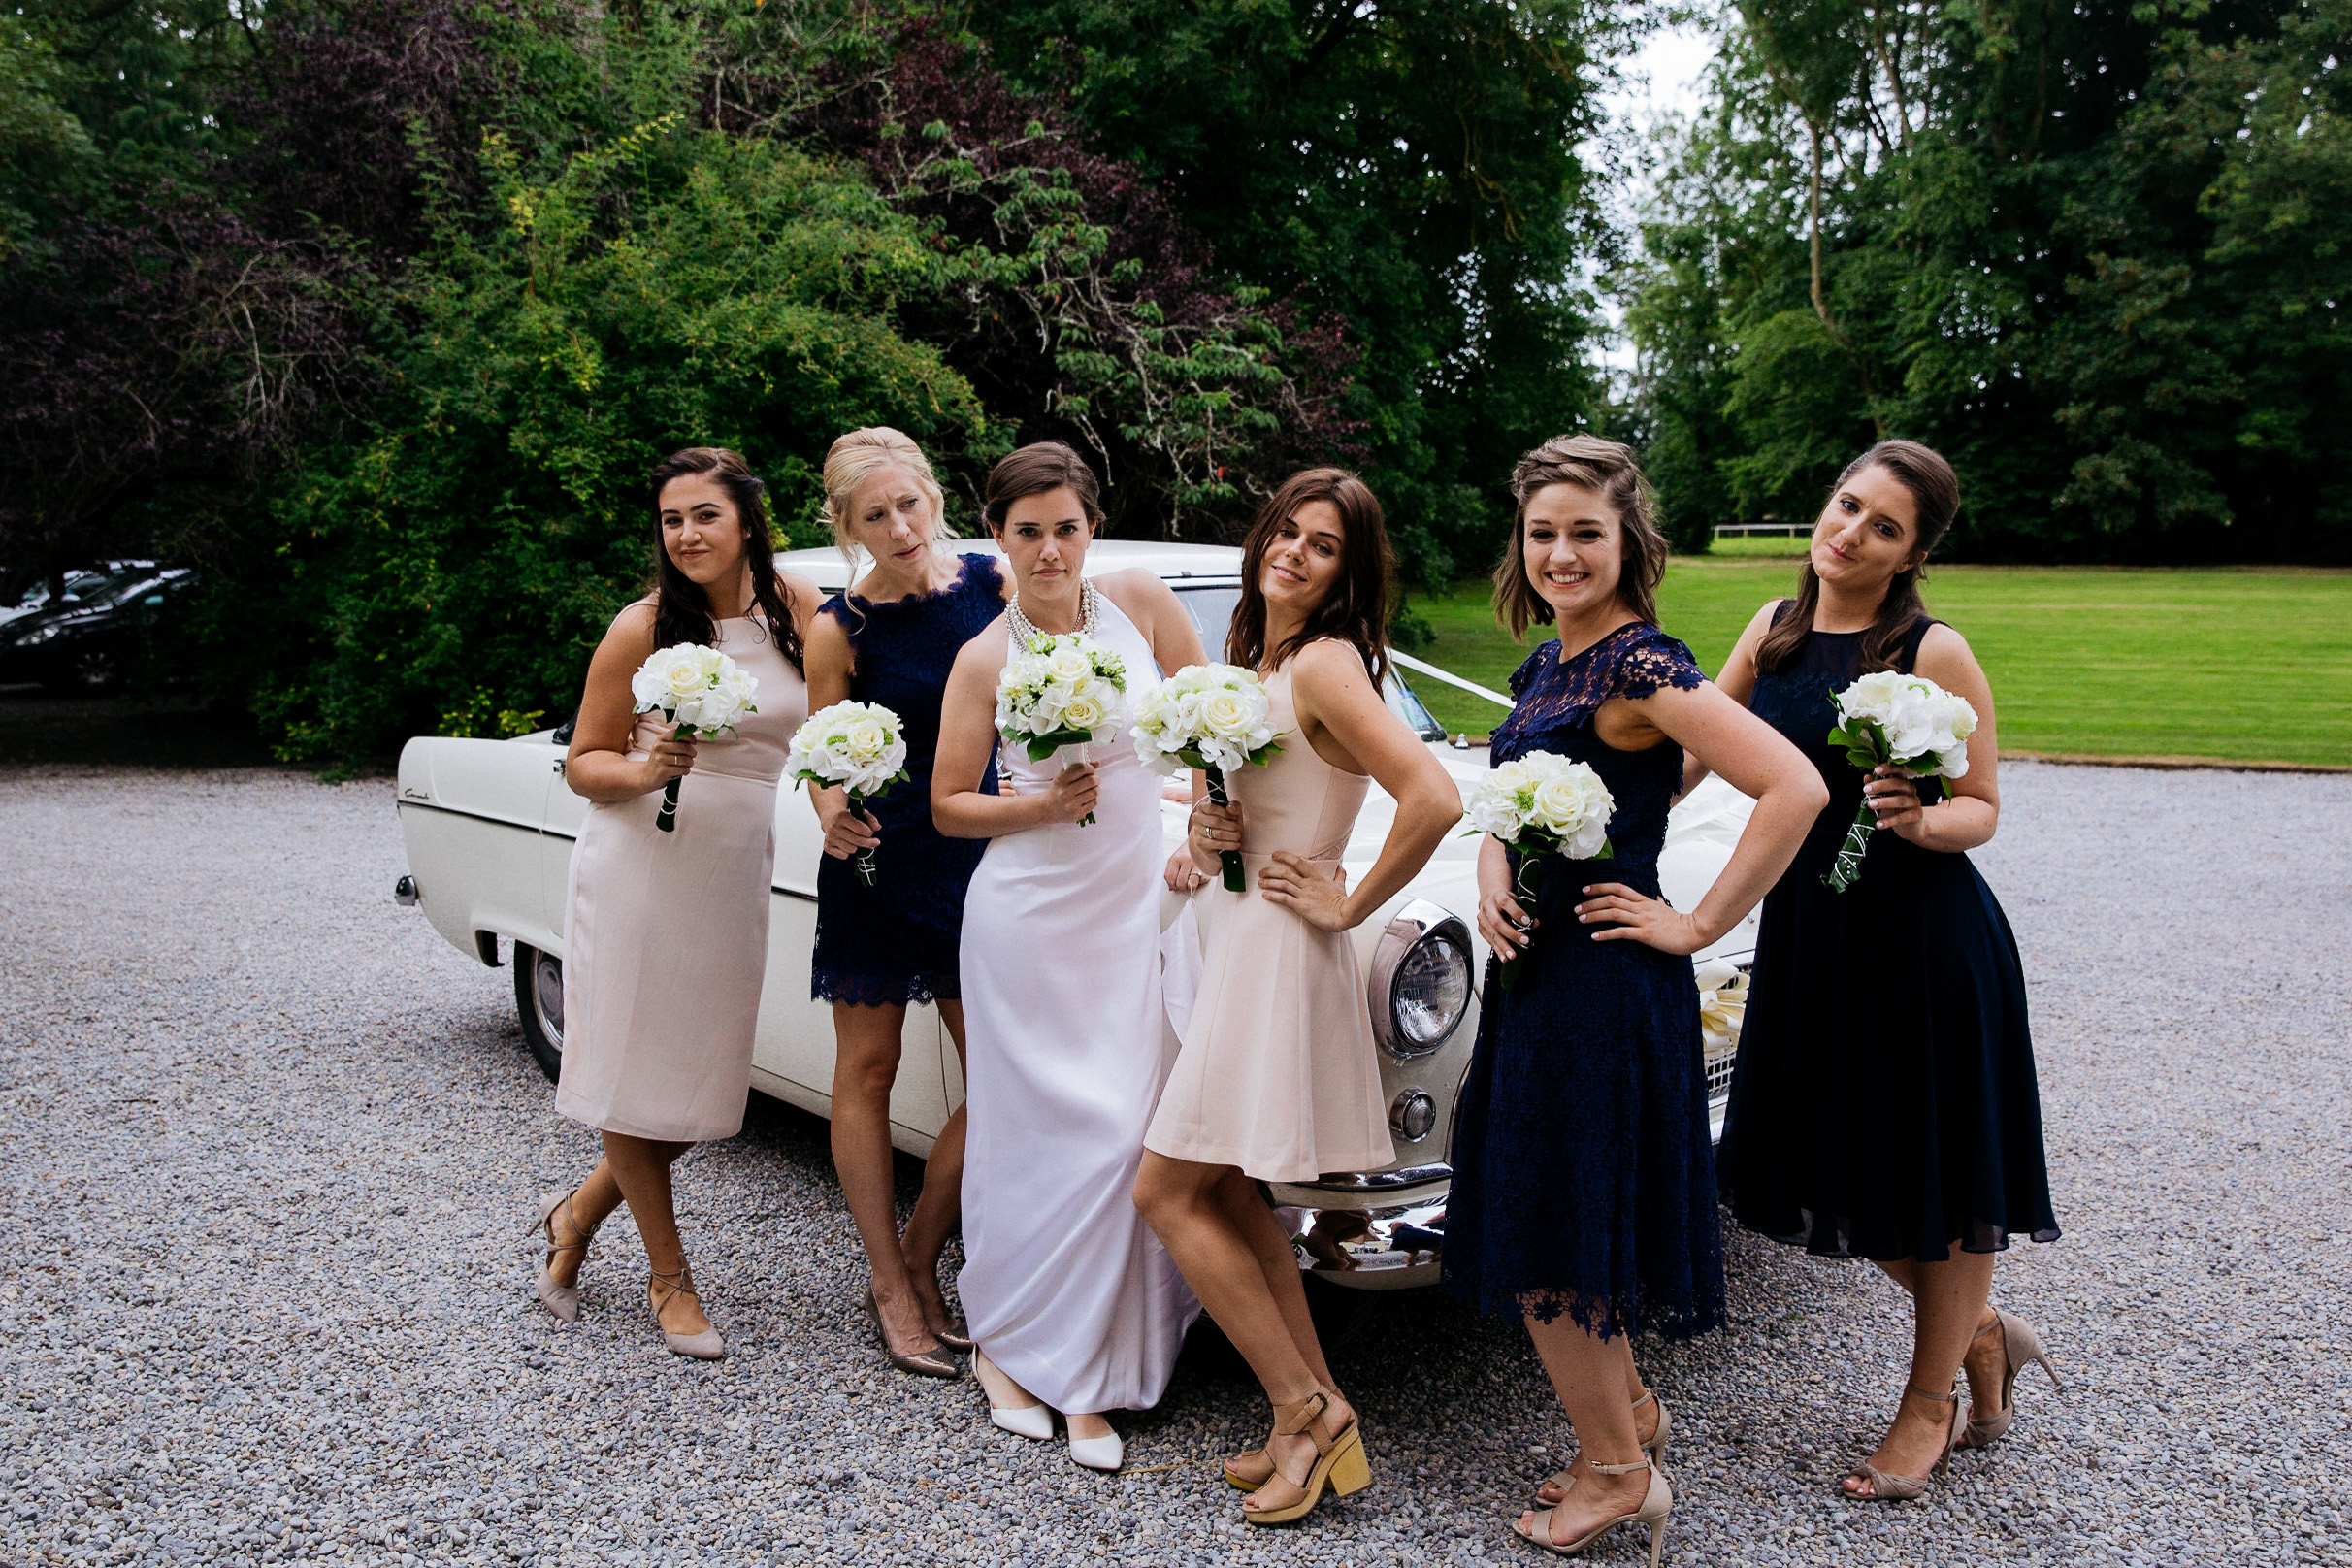 clairebyrnephotography-fun-wedding-photographer-ireland-creative-230.jpg